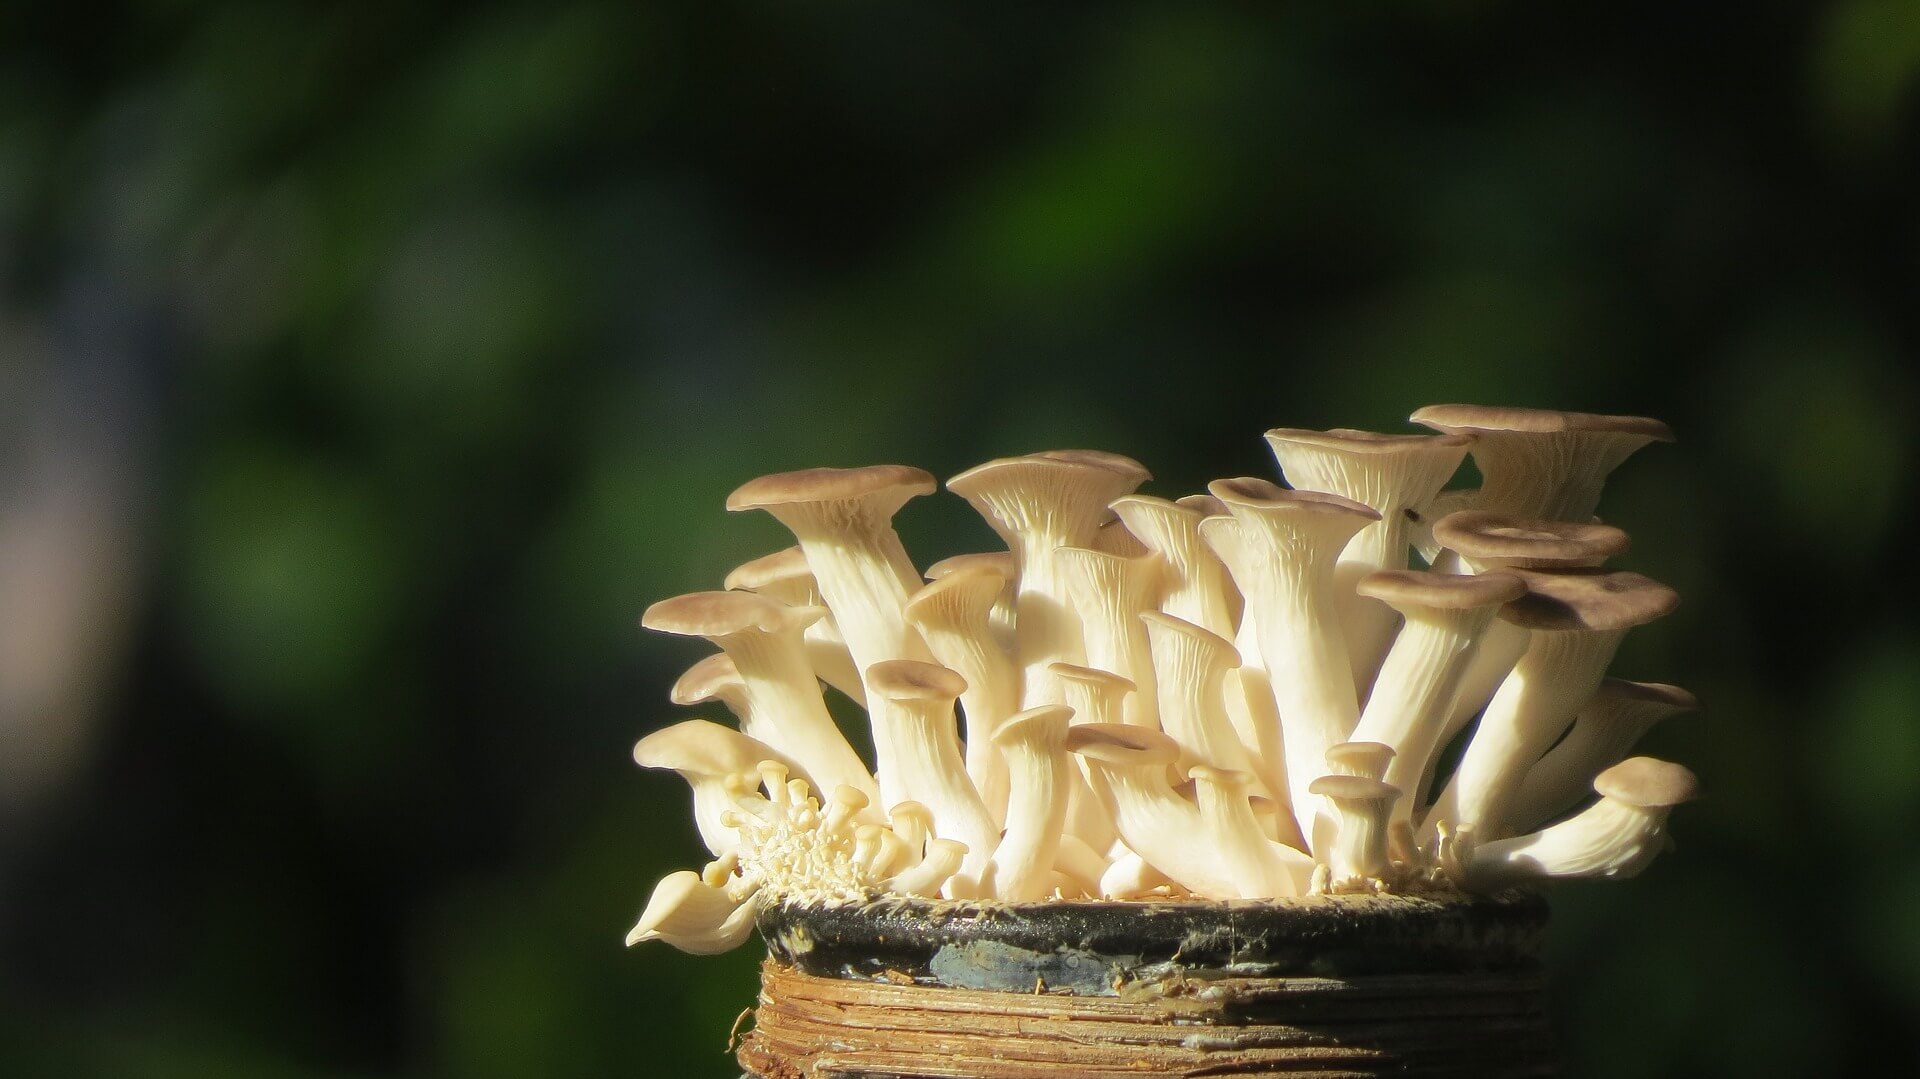 Start a Mushroom Farming Business at Home -- If you like mushrooms and you're interested in earning money from growing things, you might consider a mushroom farming business. Specialty mushroom growers are sprouting up all over, and can be a great home based business to start as a side hustle.